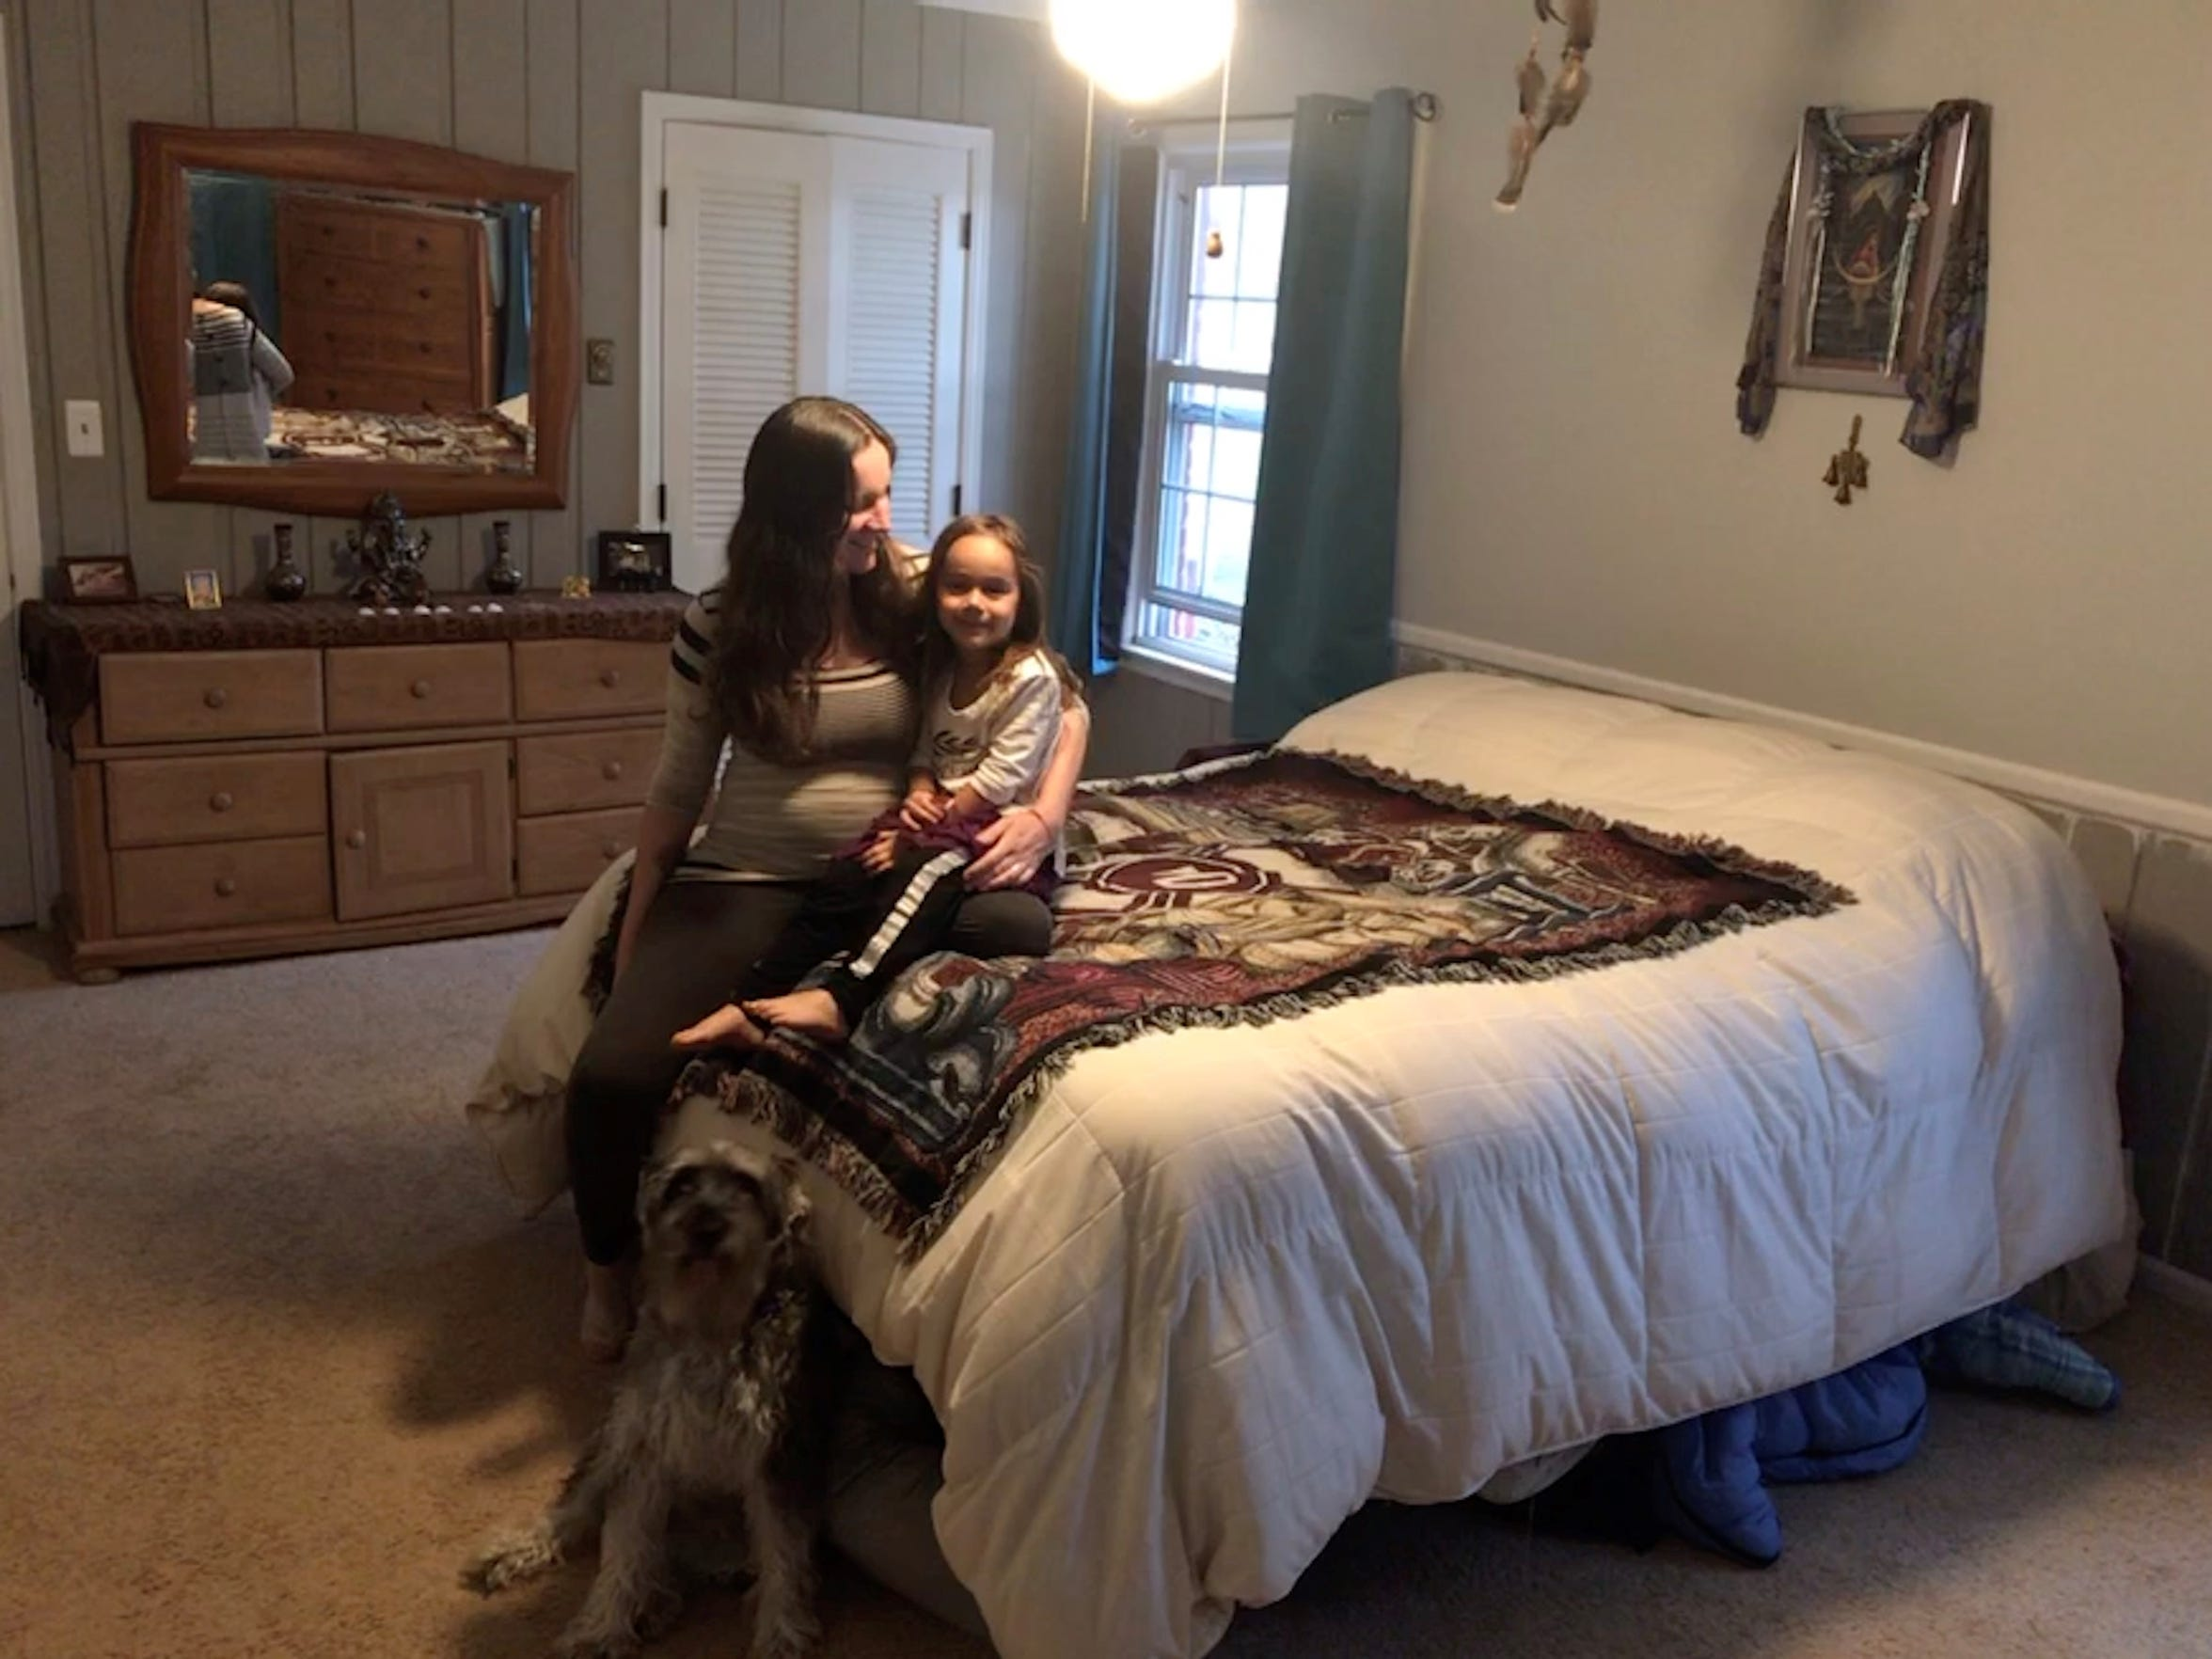 Missie Pattipati with her daughter Ayana, 4, at home in South Lyon. Pattipati hopes to protect the health of Ayana who has asthma and avoid exposure to coronavirus at the hospital by giving birth at home in July.